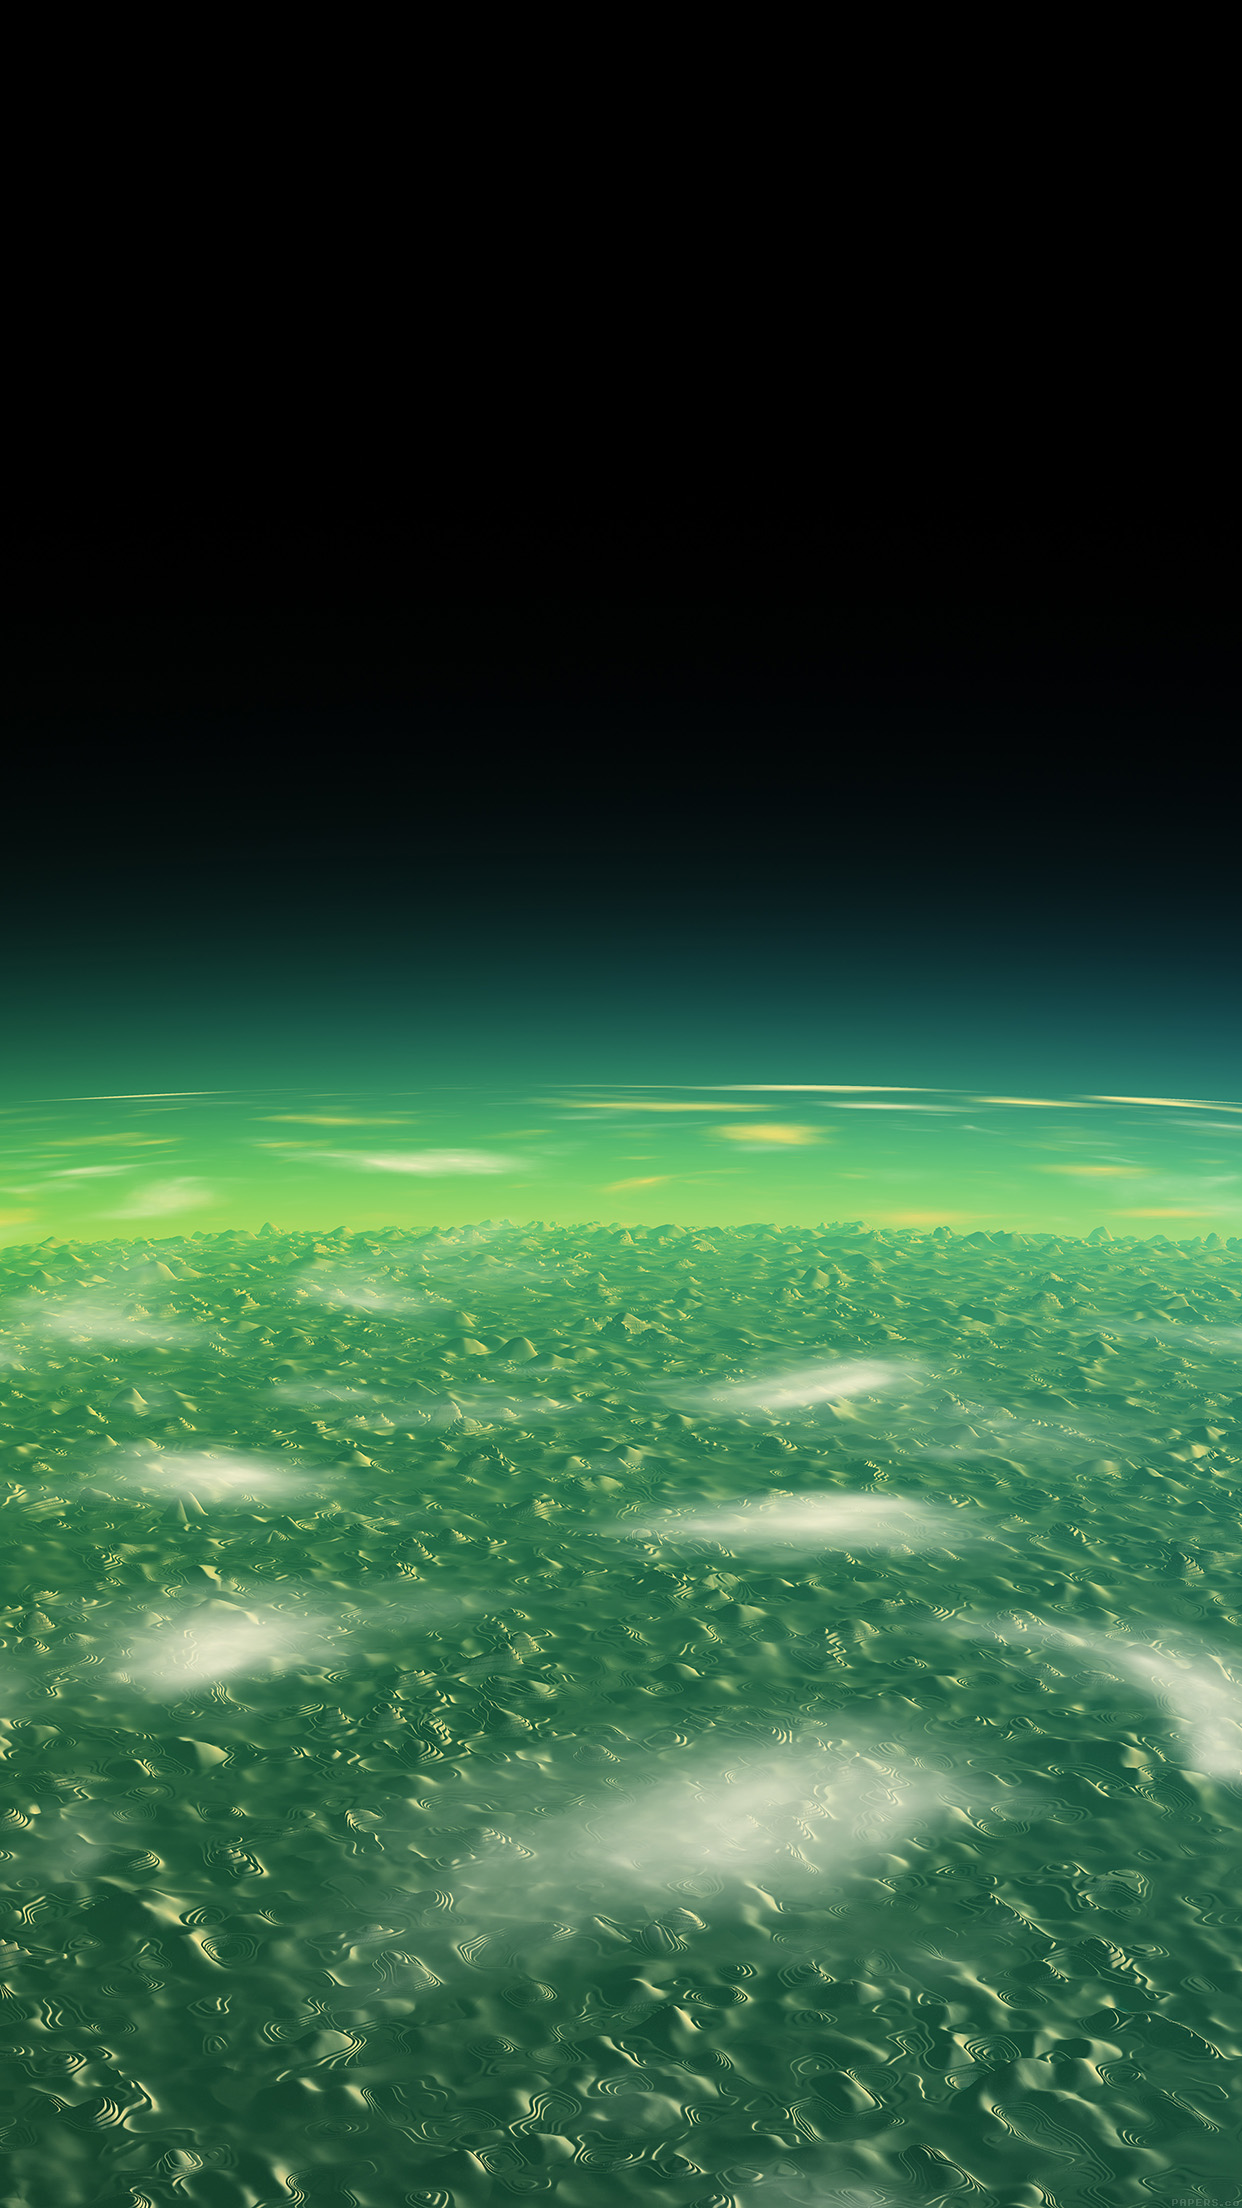 Alien Green Earth Space Planet Dark Android wallpaper